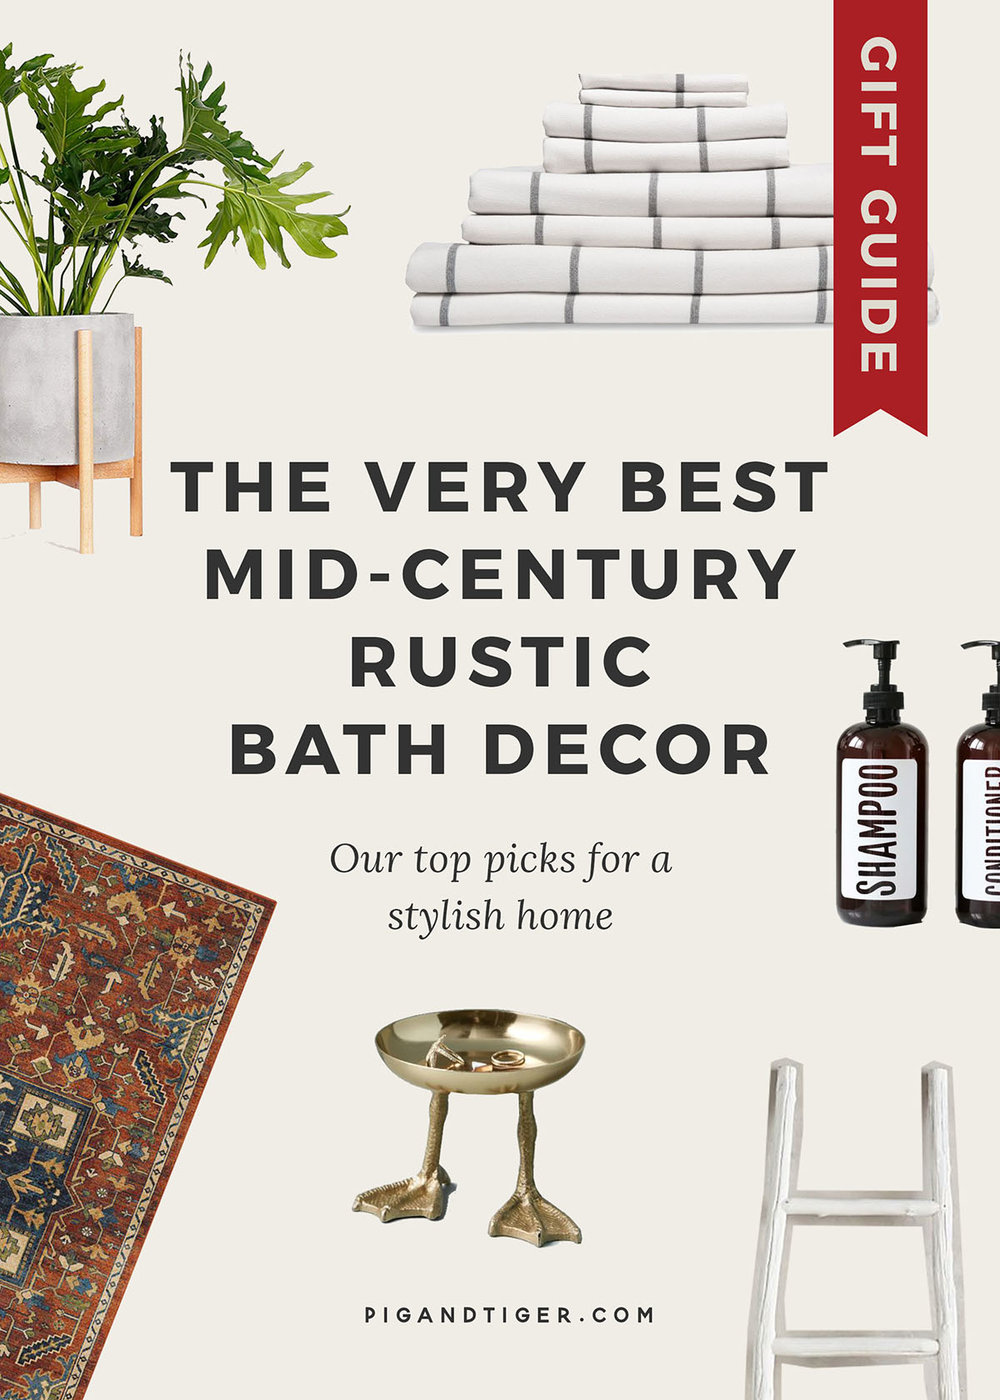 The very best mid century modern rustic bath decor gift guide - CLICK FOR DETAILS